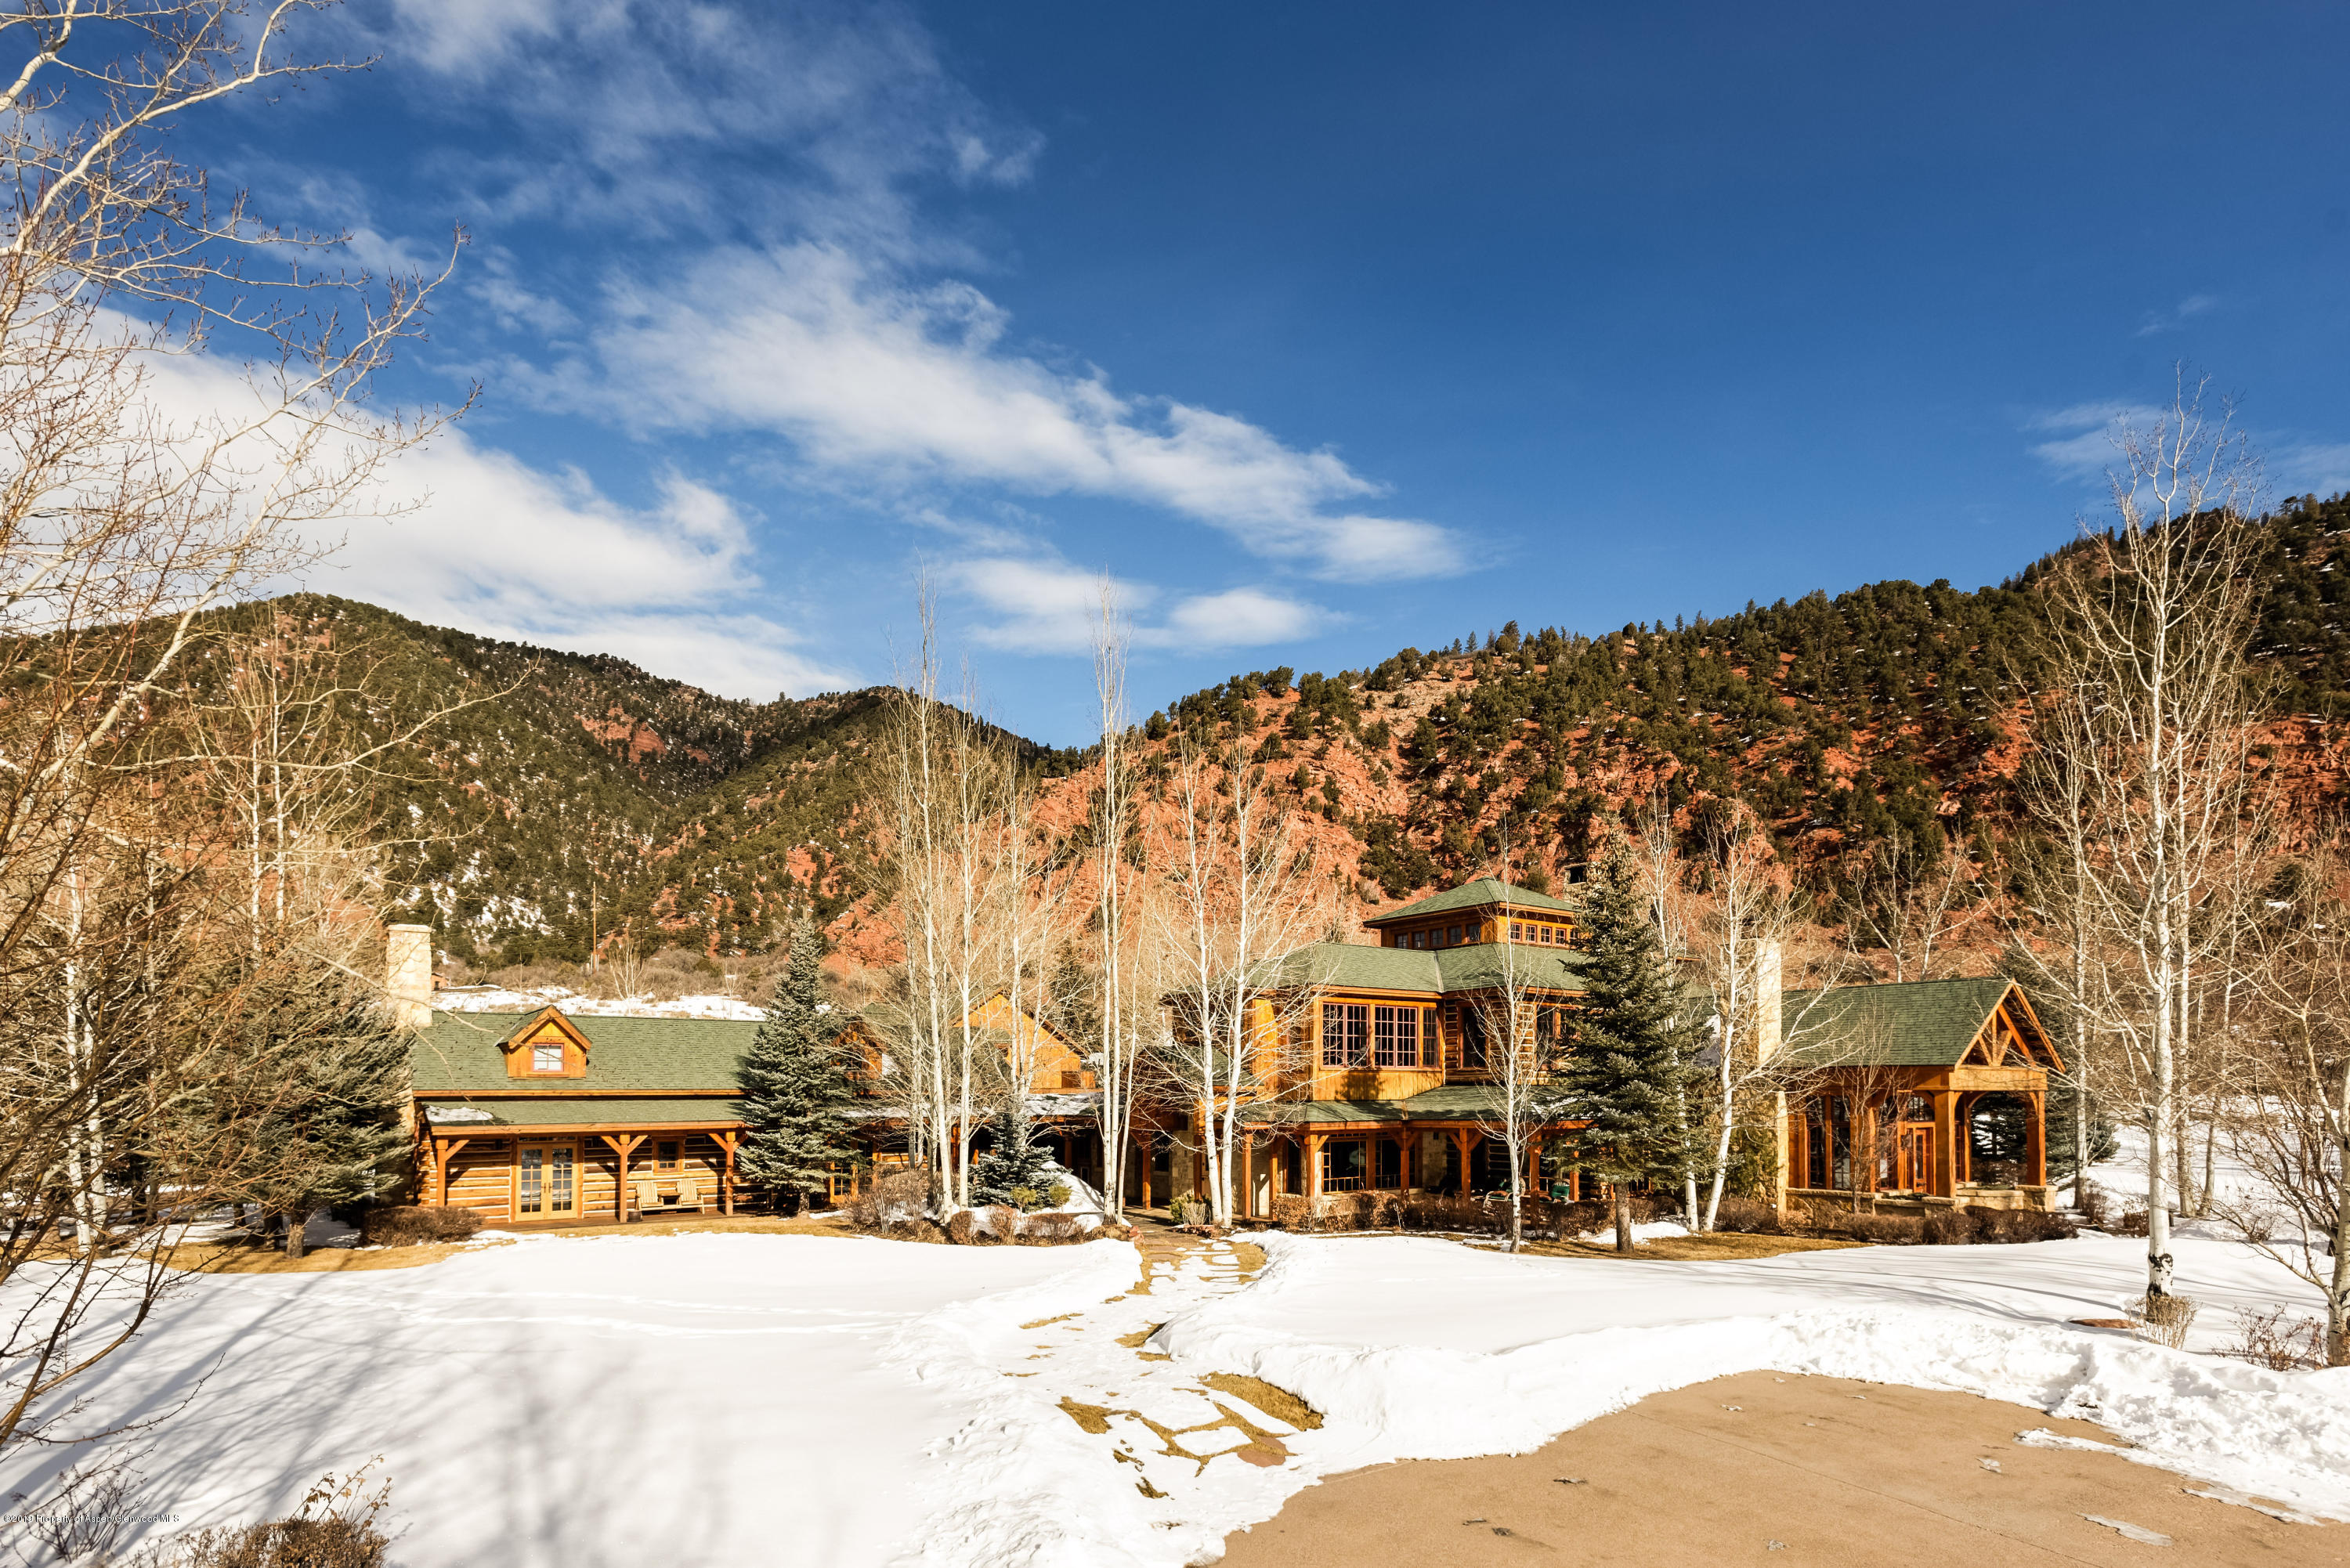 MLS# 135595 - 74 - 50 E River Ranch Road, Snowmass, CO 81654